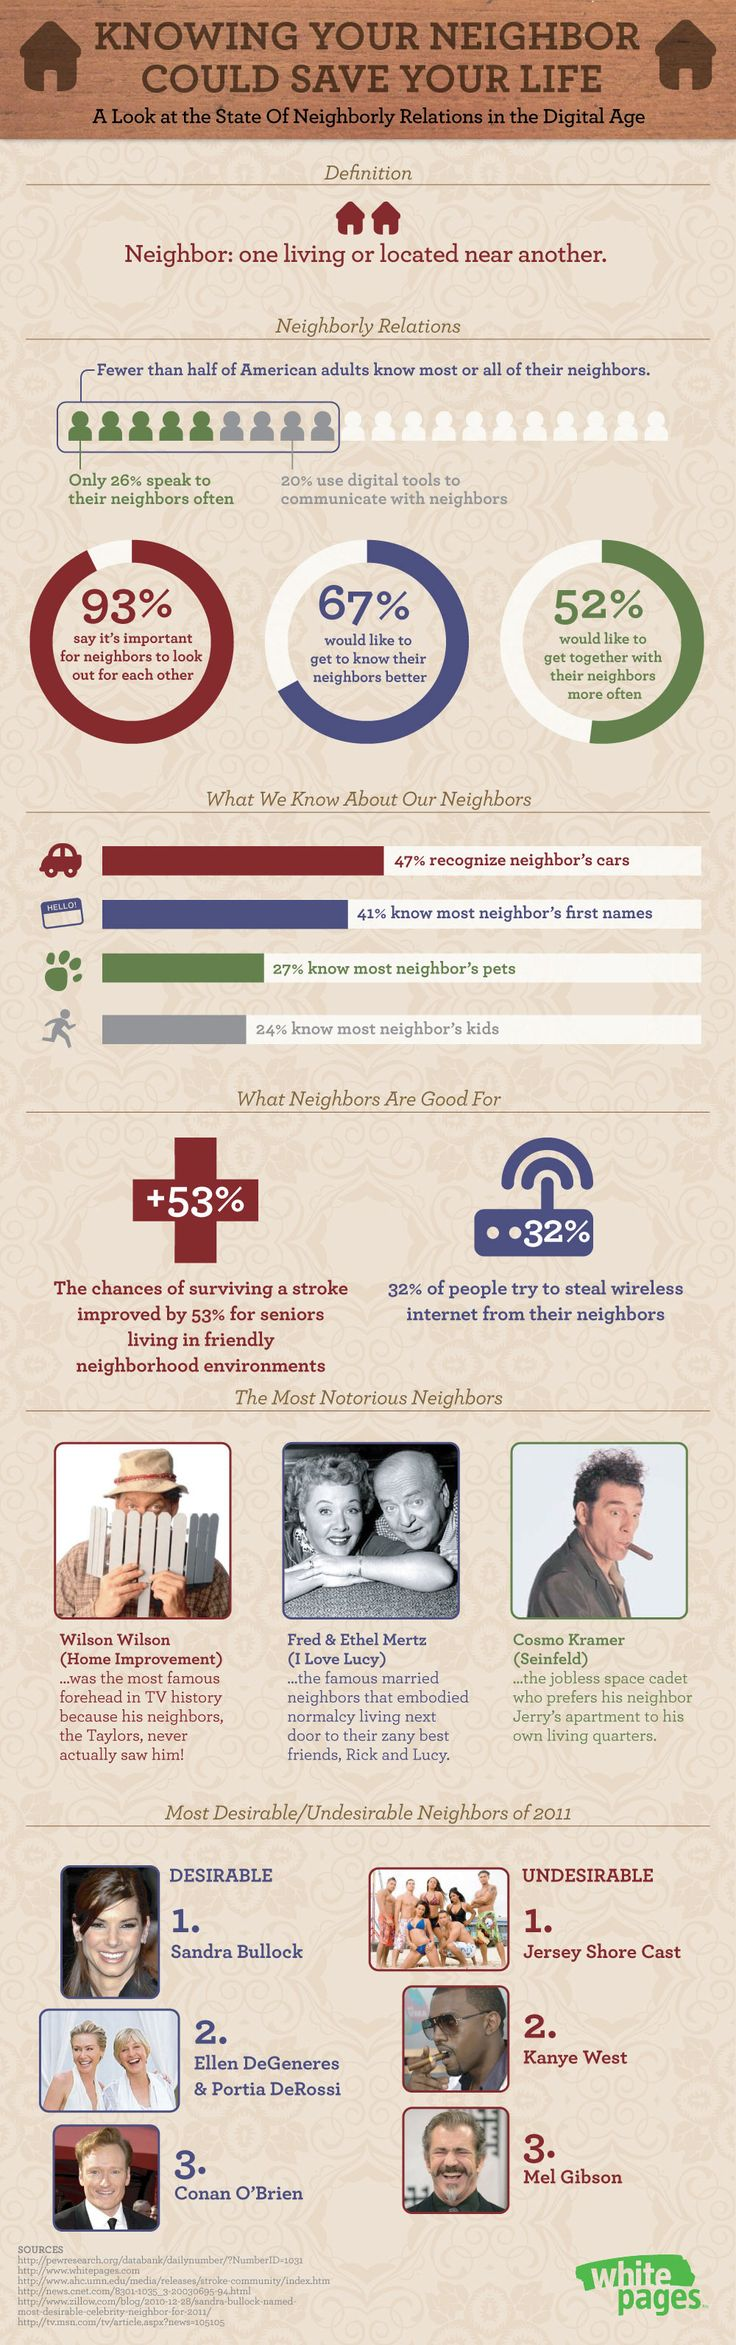 """""""Knowing Your Neighbor Could Save Your Life: A Look at the State of Neighborly Relations in the Digital Age"""" #infographic"""